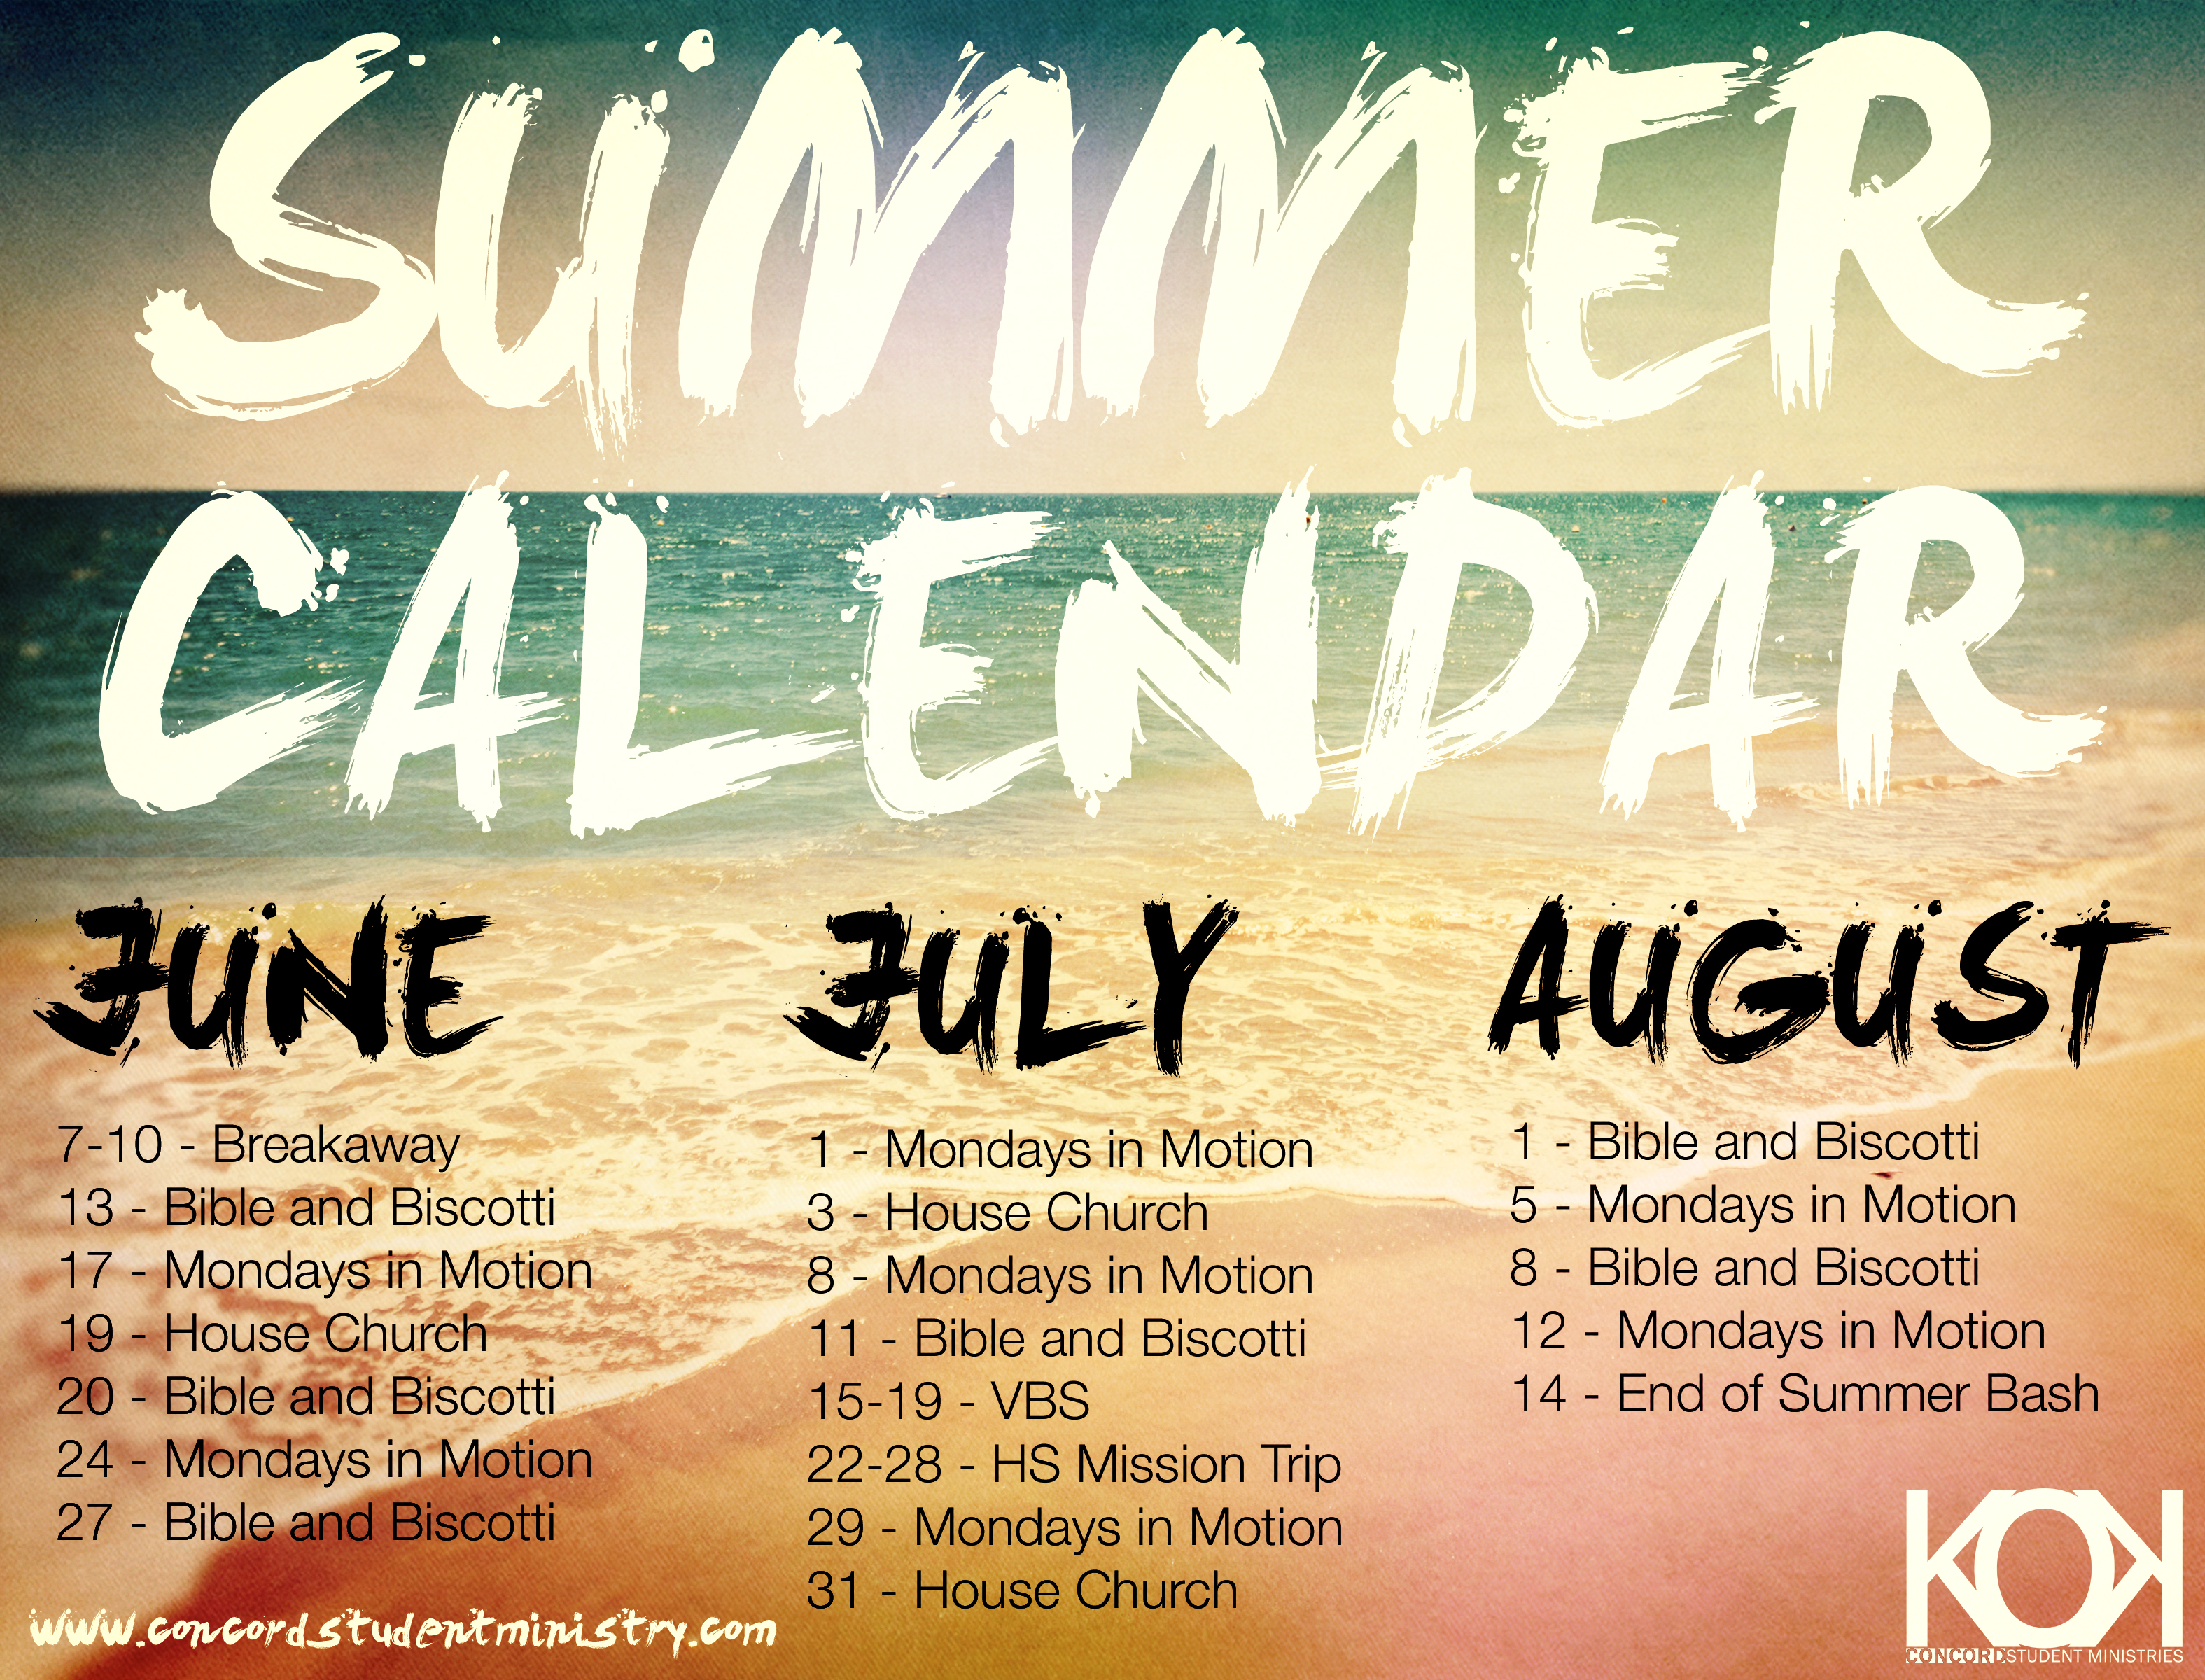 Summer Calendar Concord Student Ministry